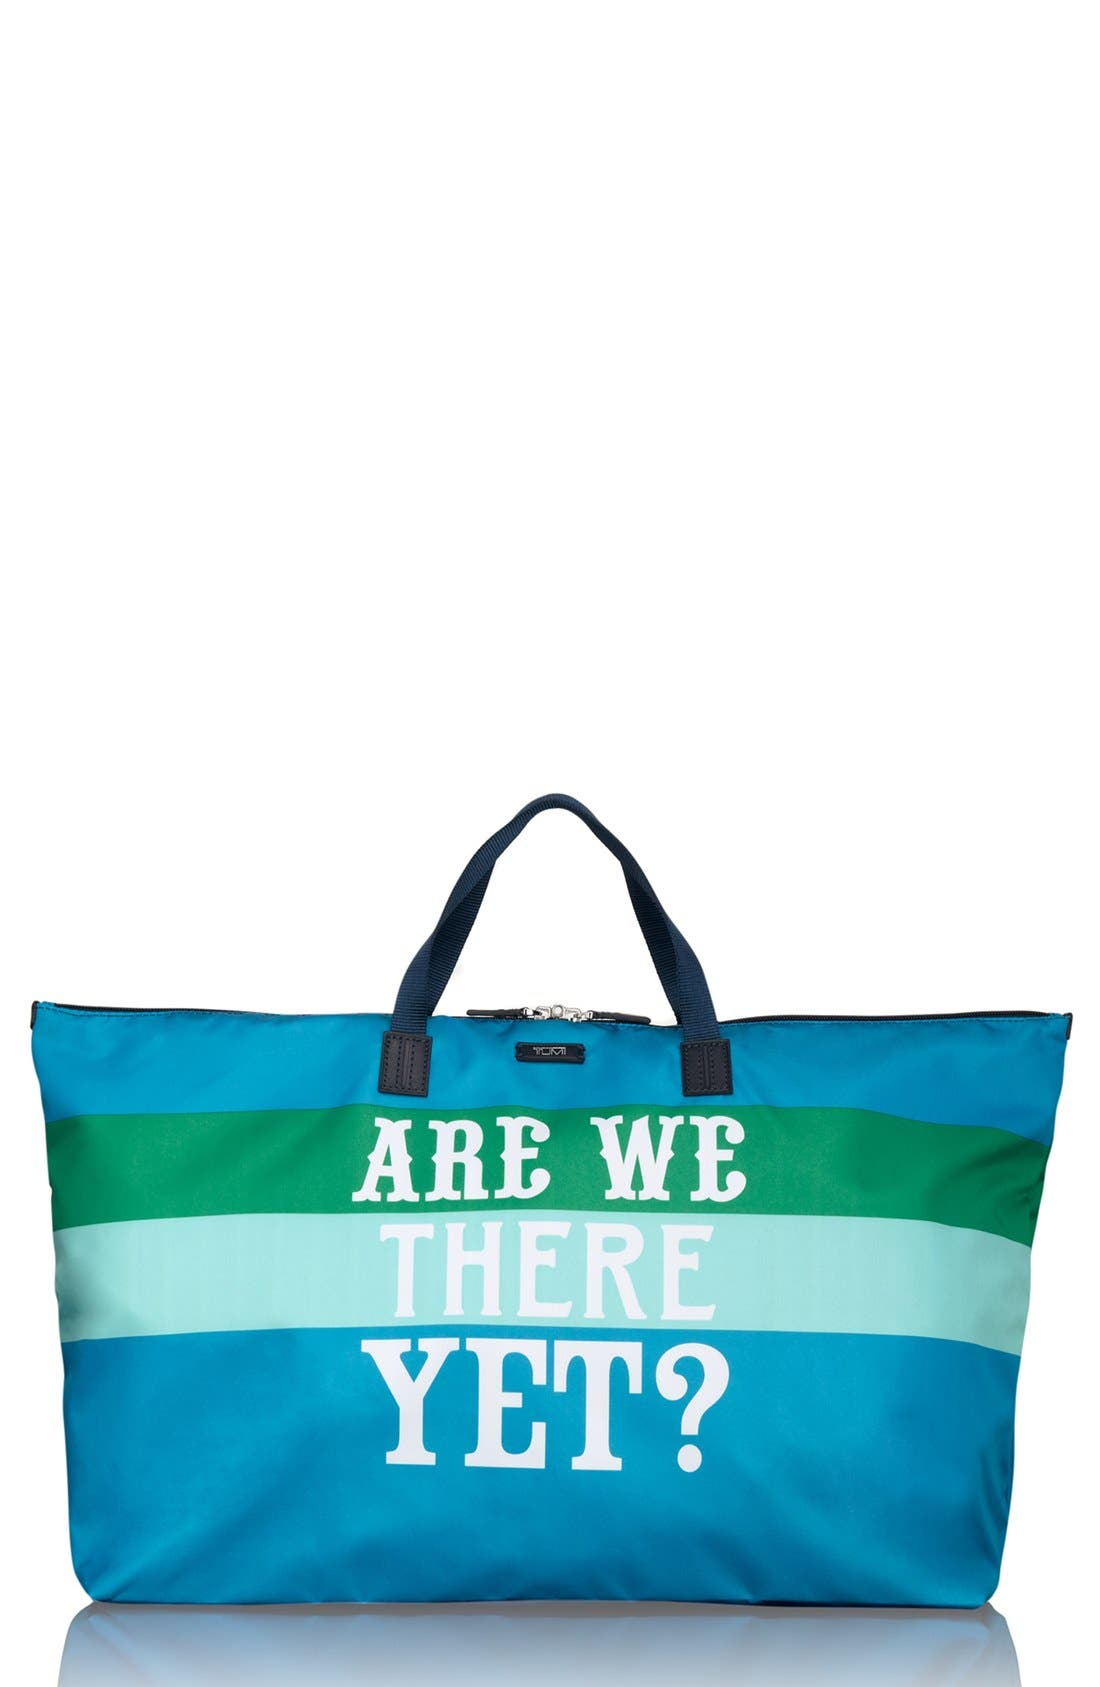 Alternate Image 1 Selected - Tumi 'Are We There Yet?' Nylon Tote